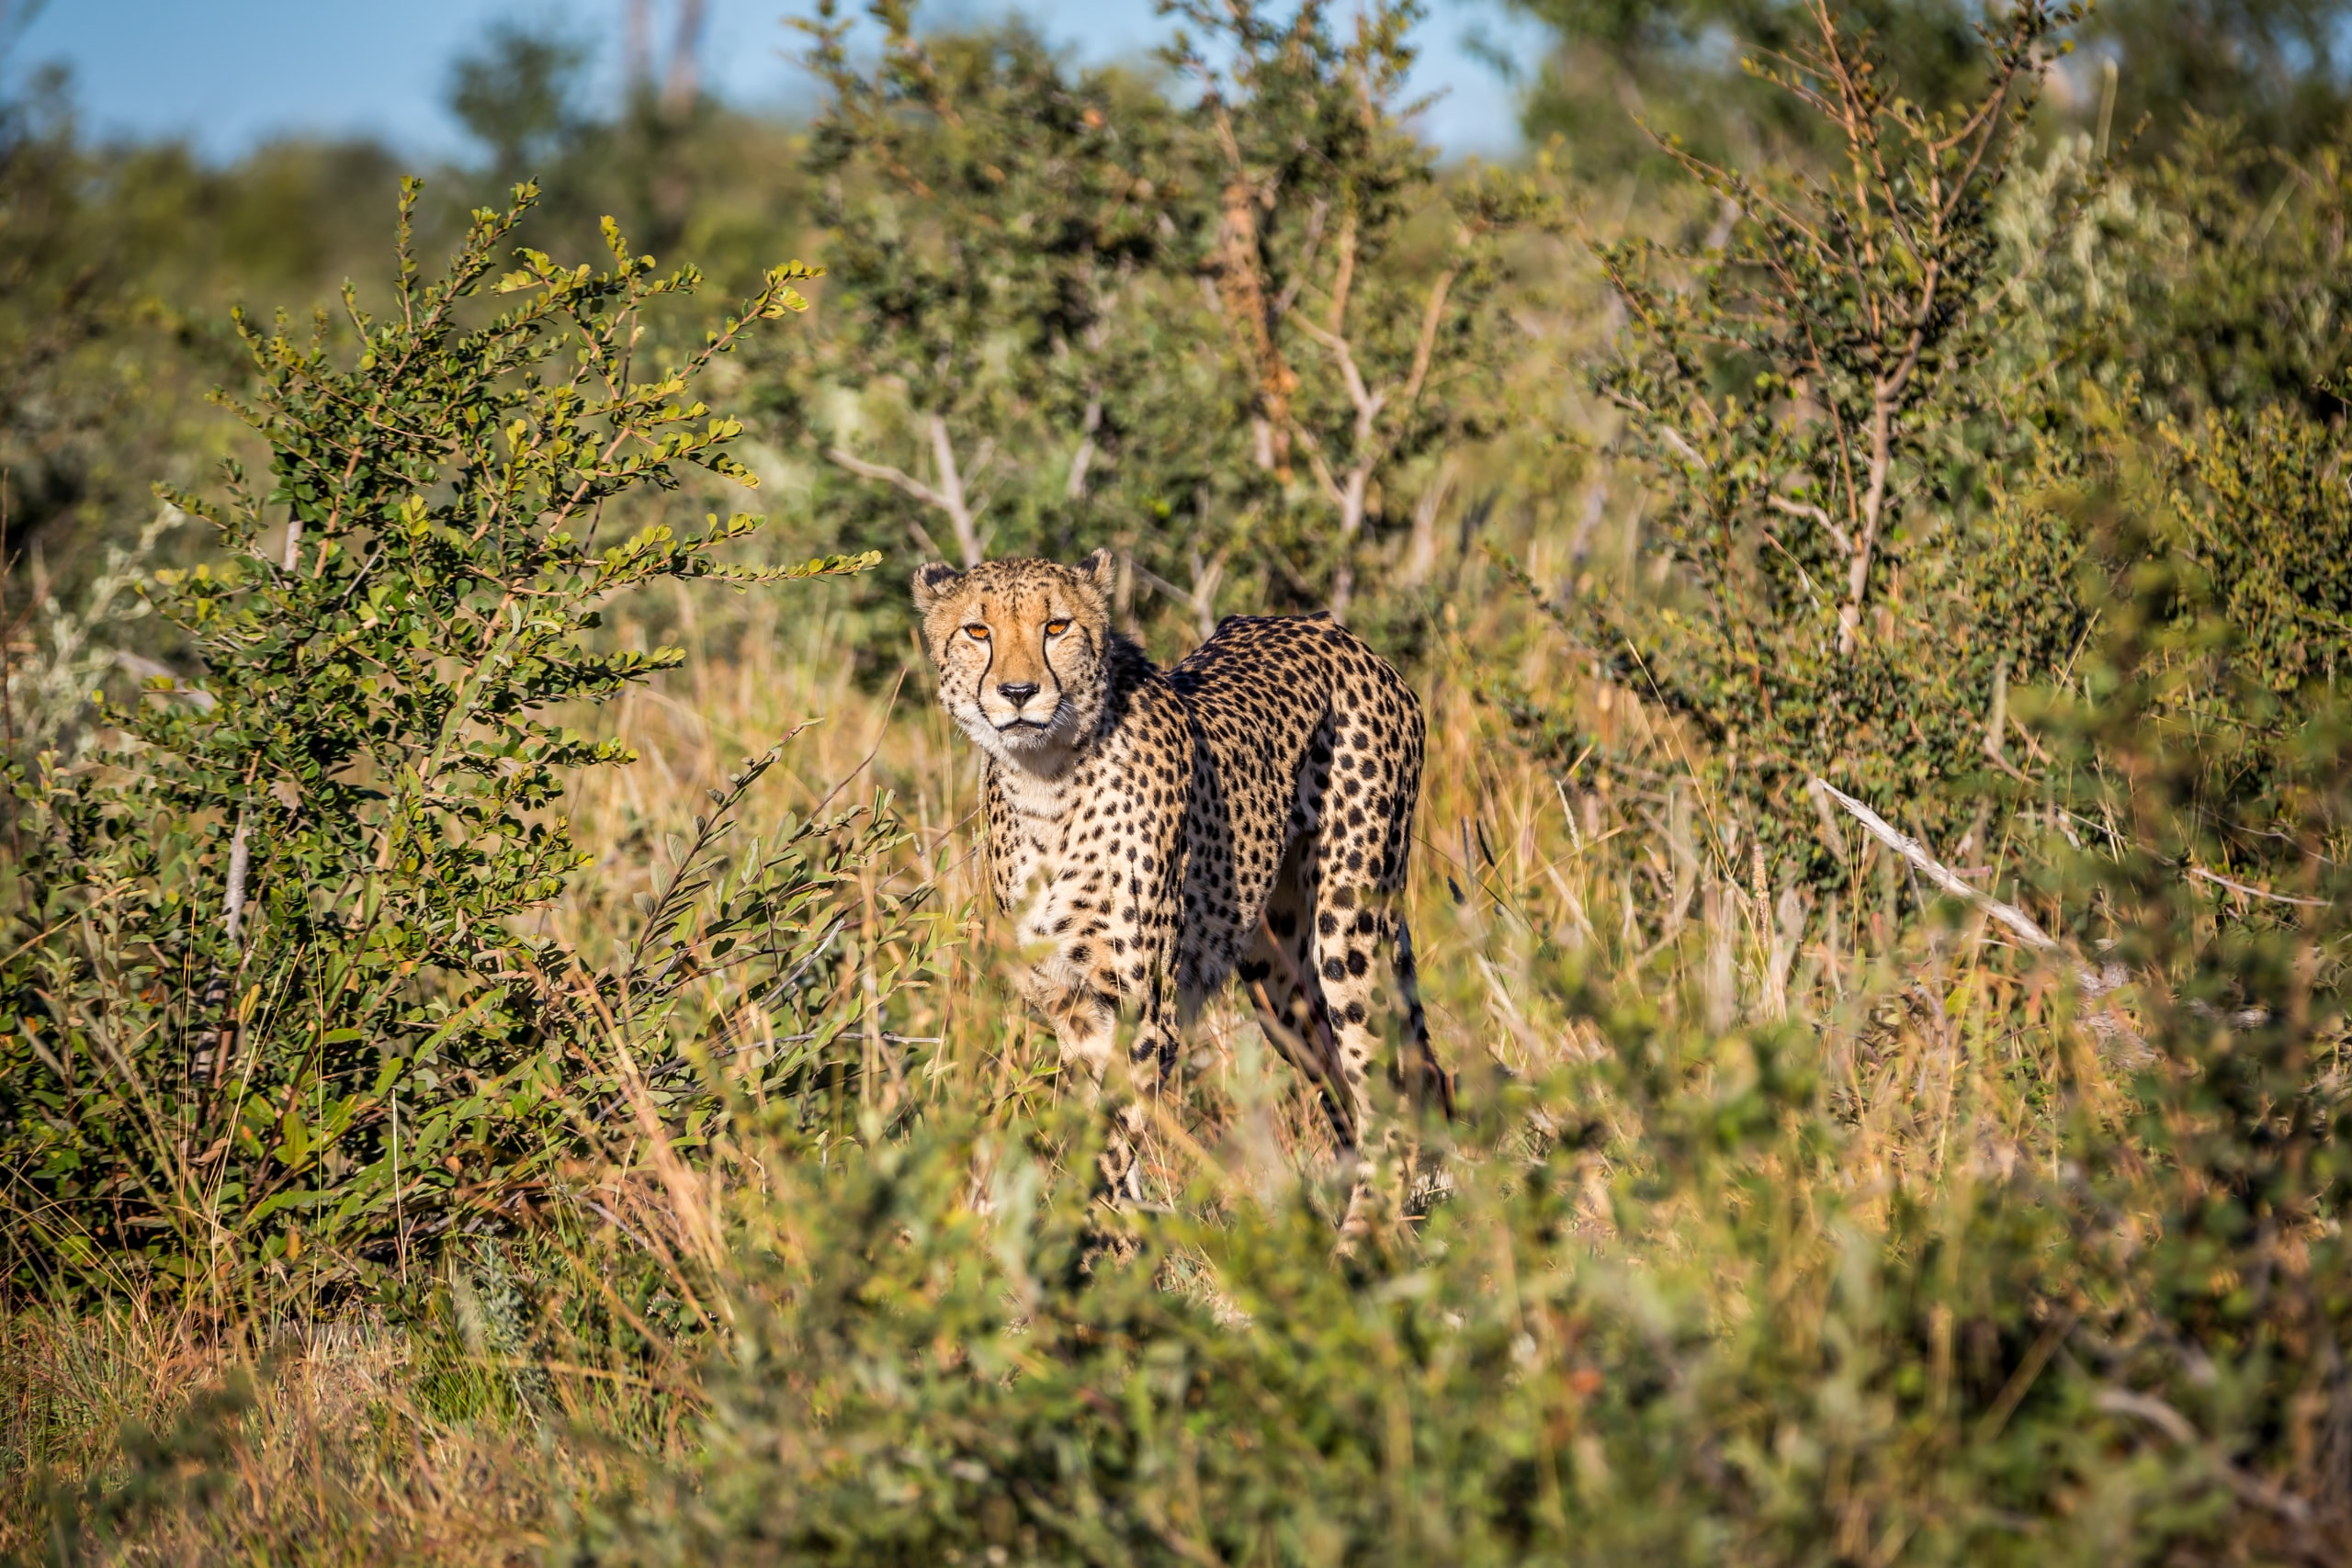 A cheetah staring at the camera in Madikwe Game Reserve